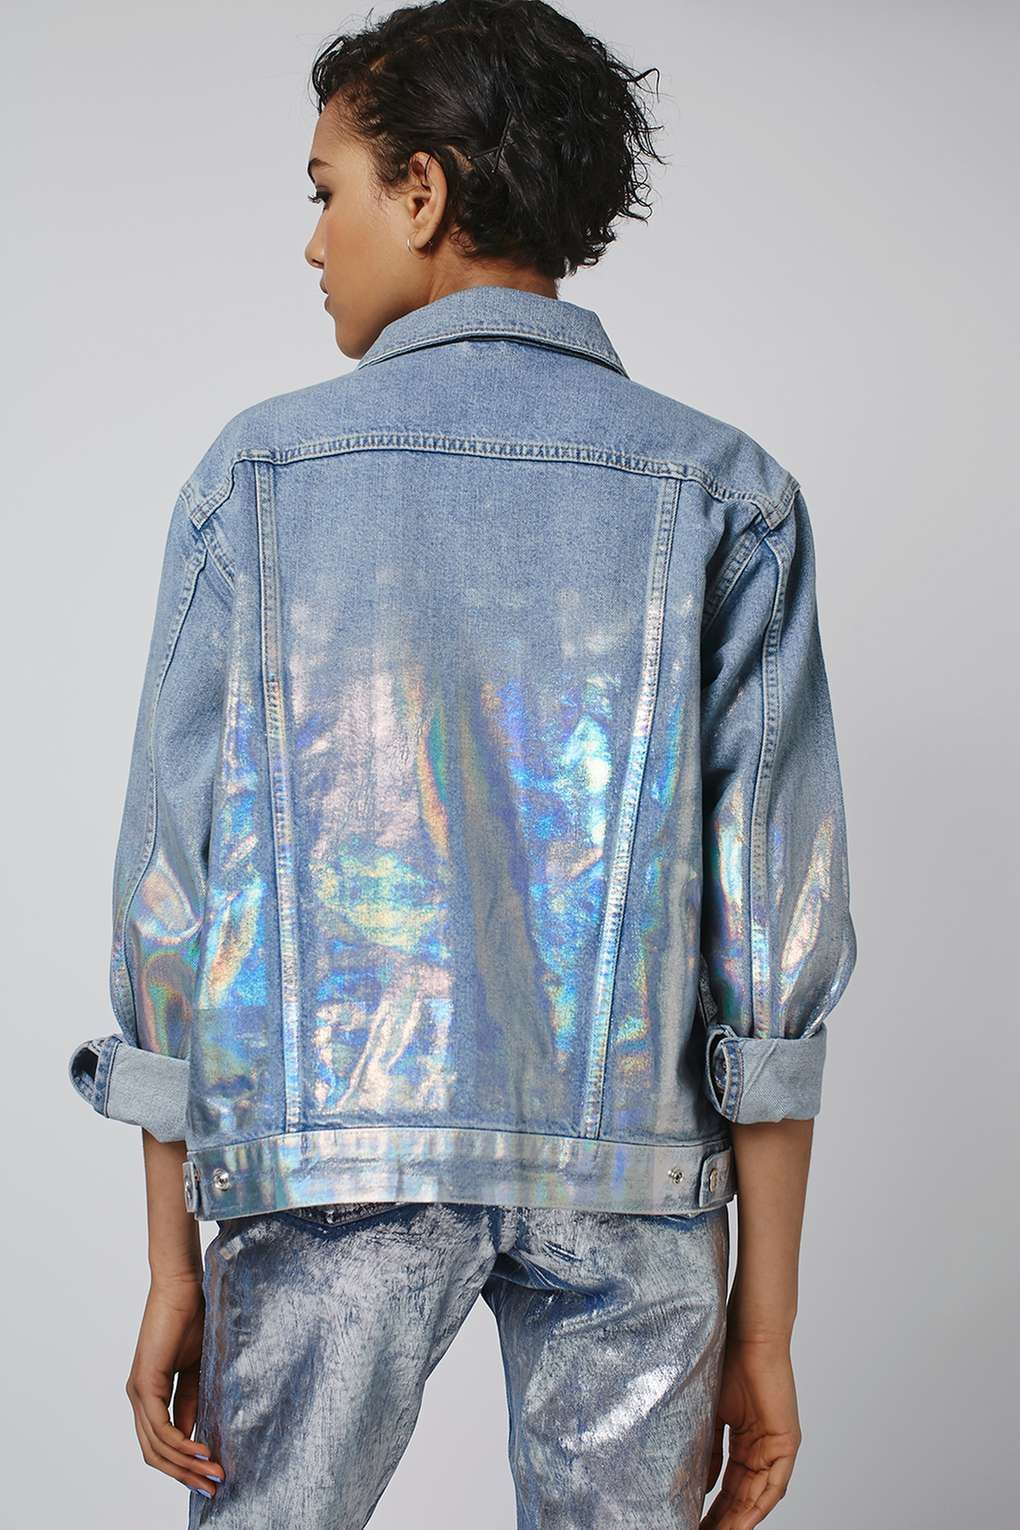 MOTO Foil Oversized Jacket in 2020 Denim outfit, Denim